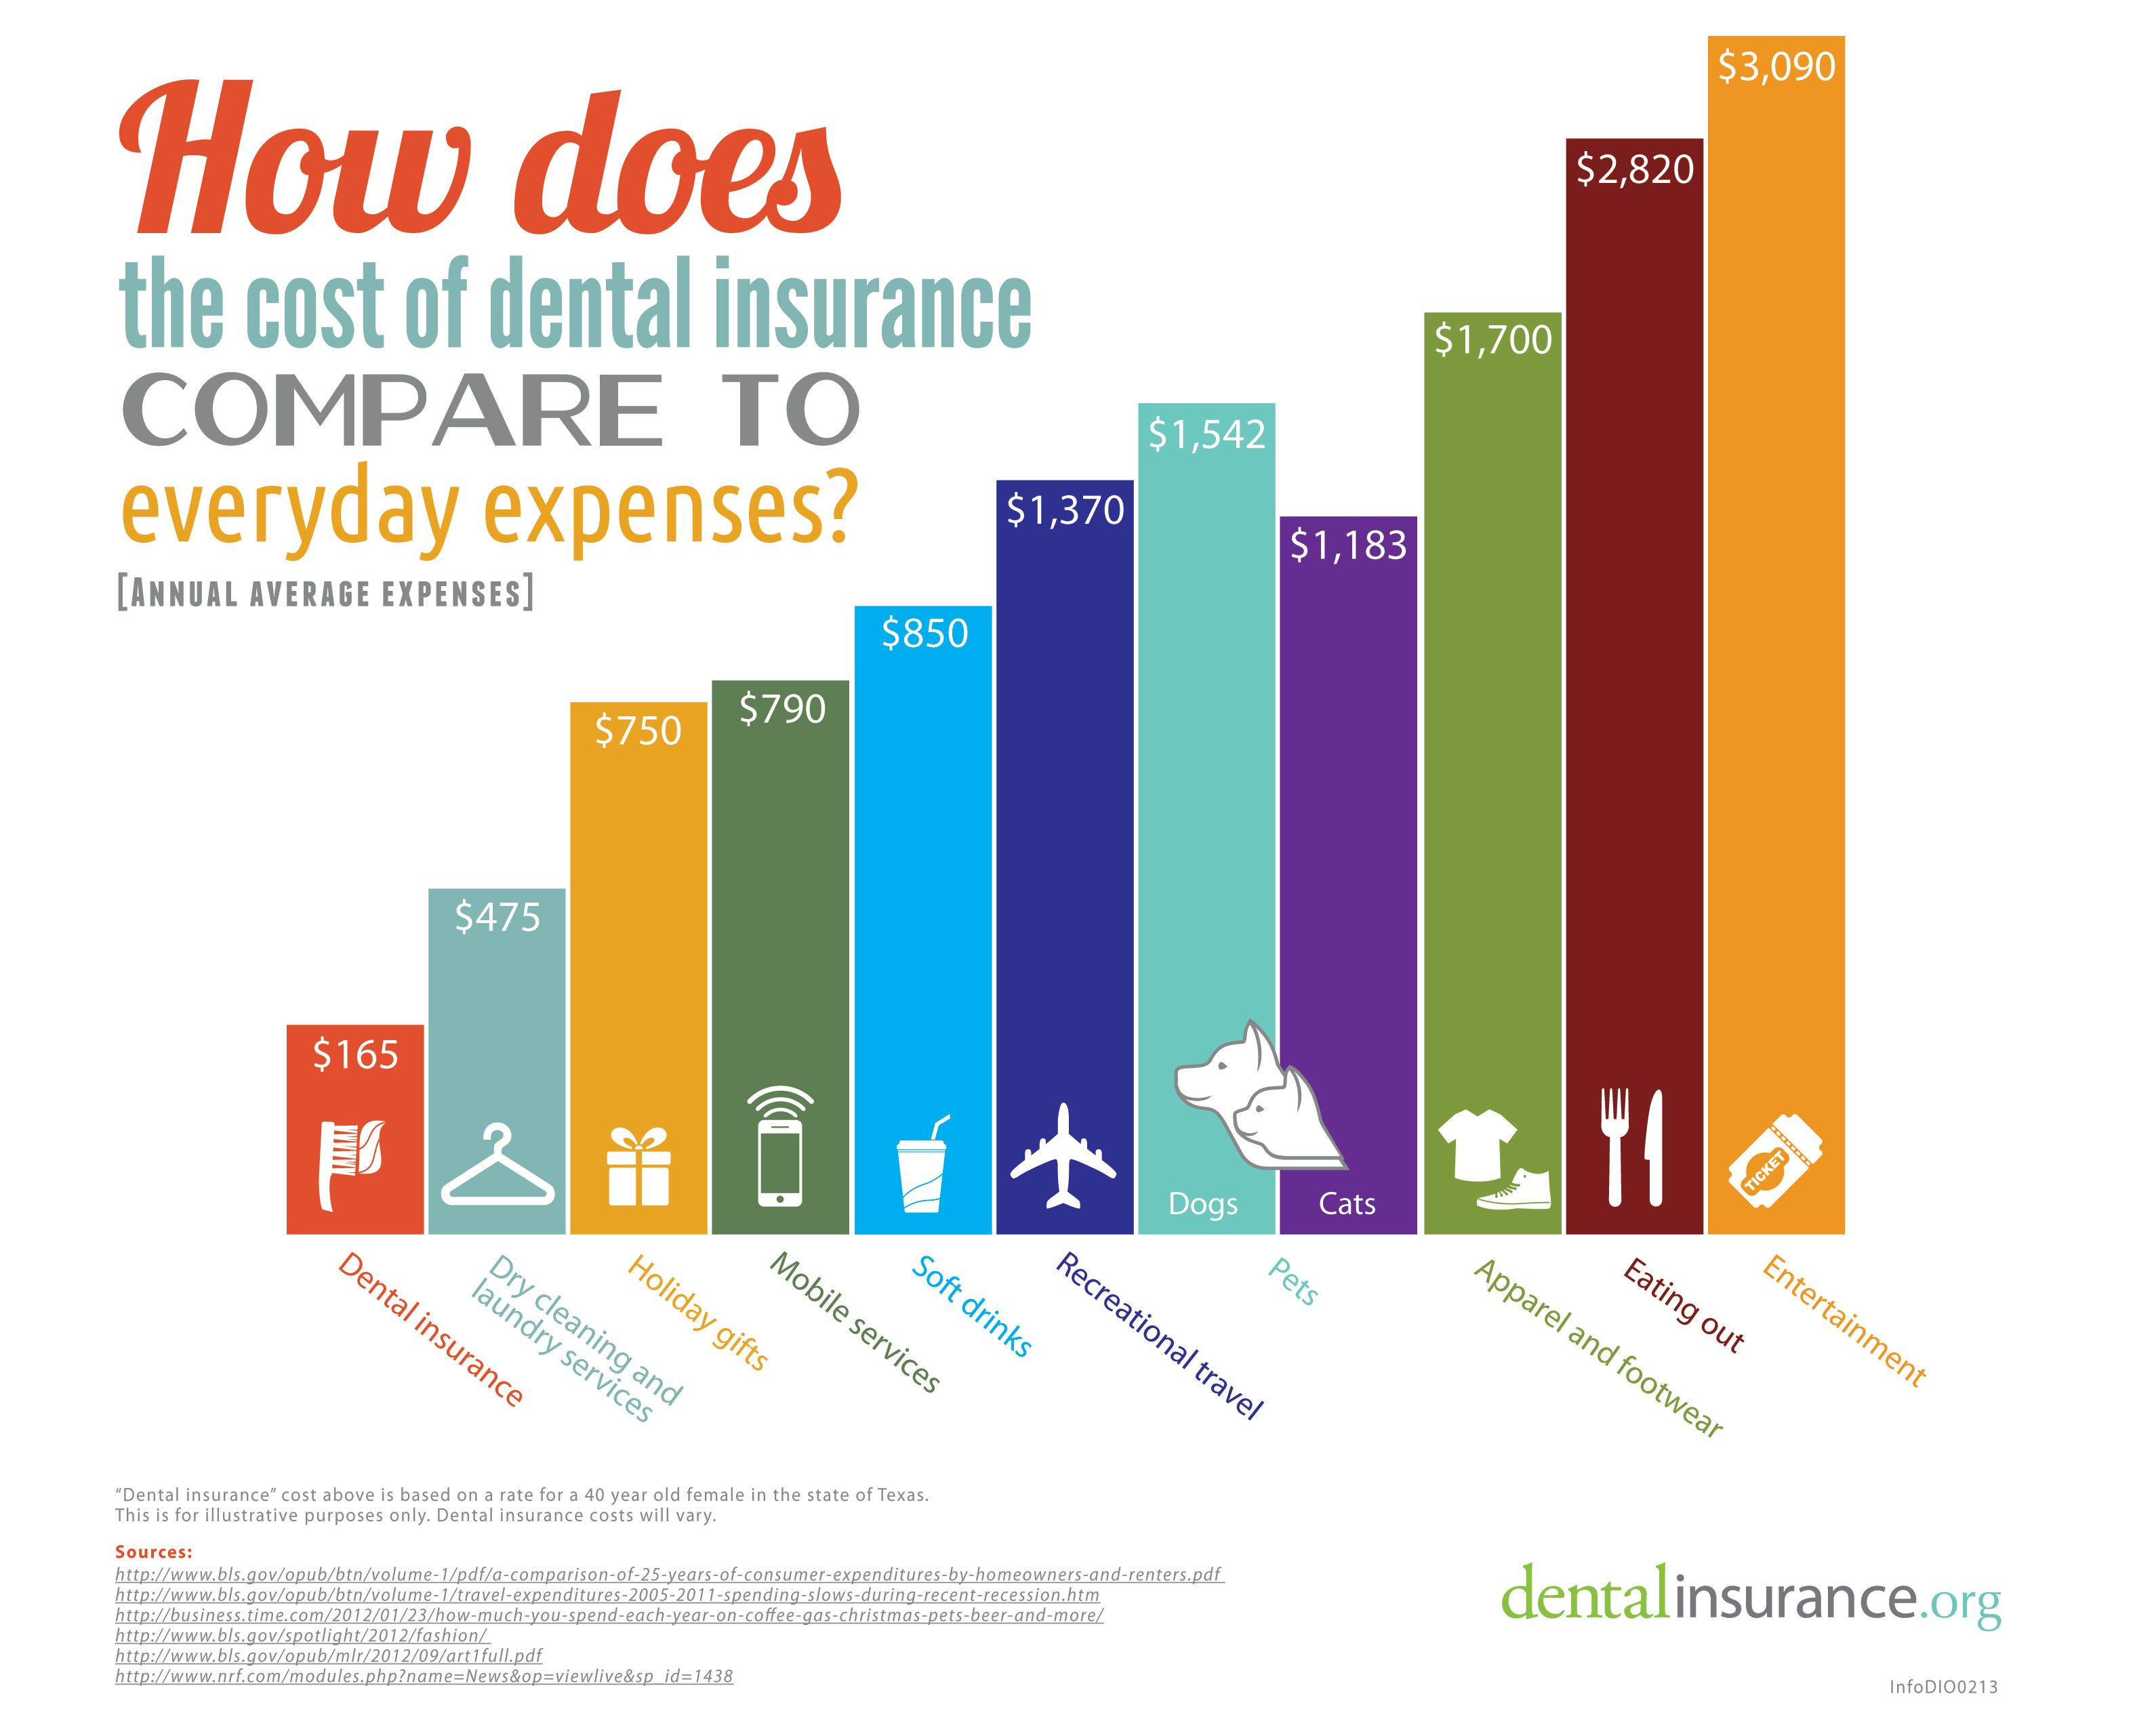 Cost comparison of dental insurance to other everyday